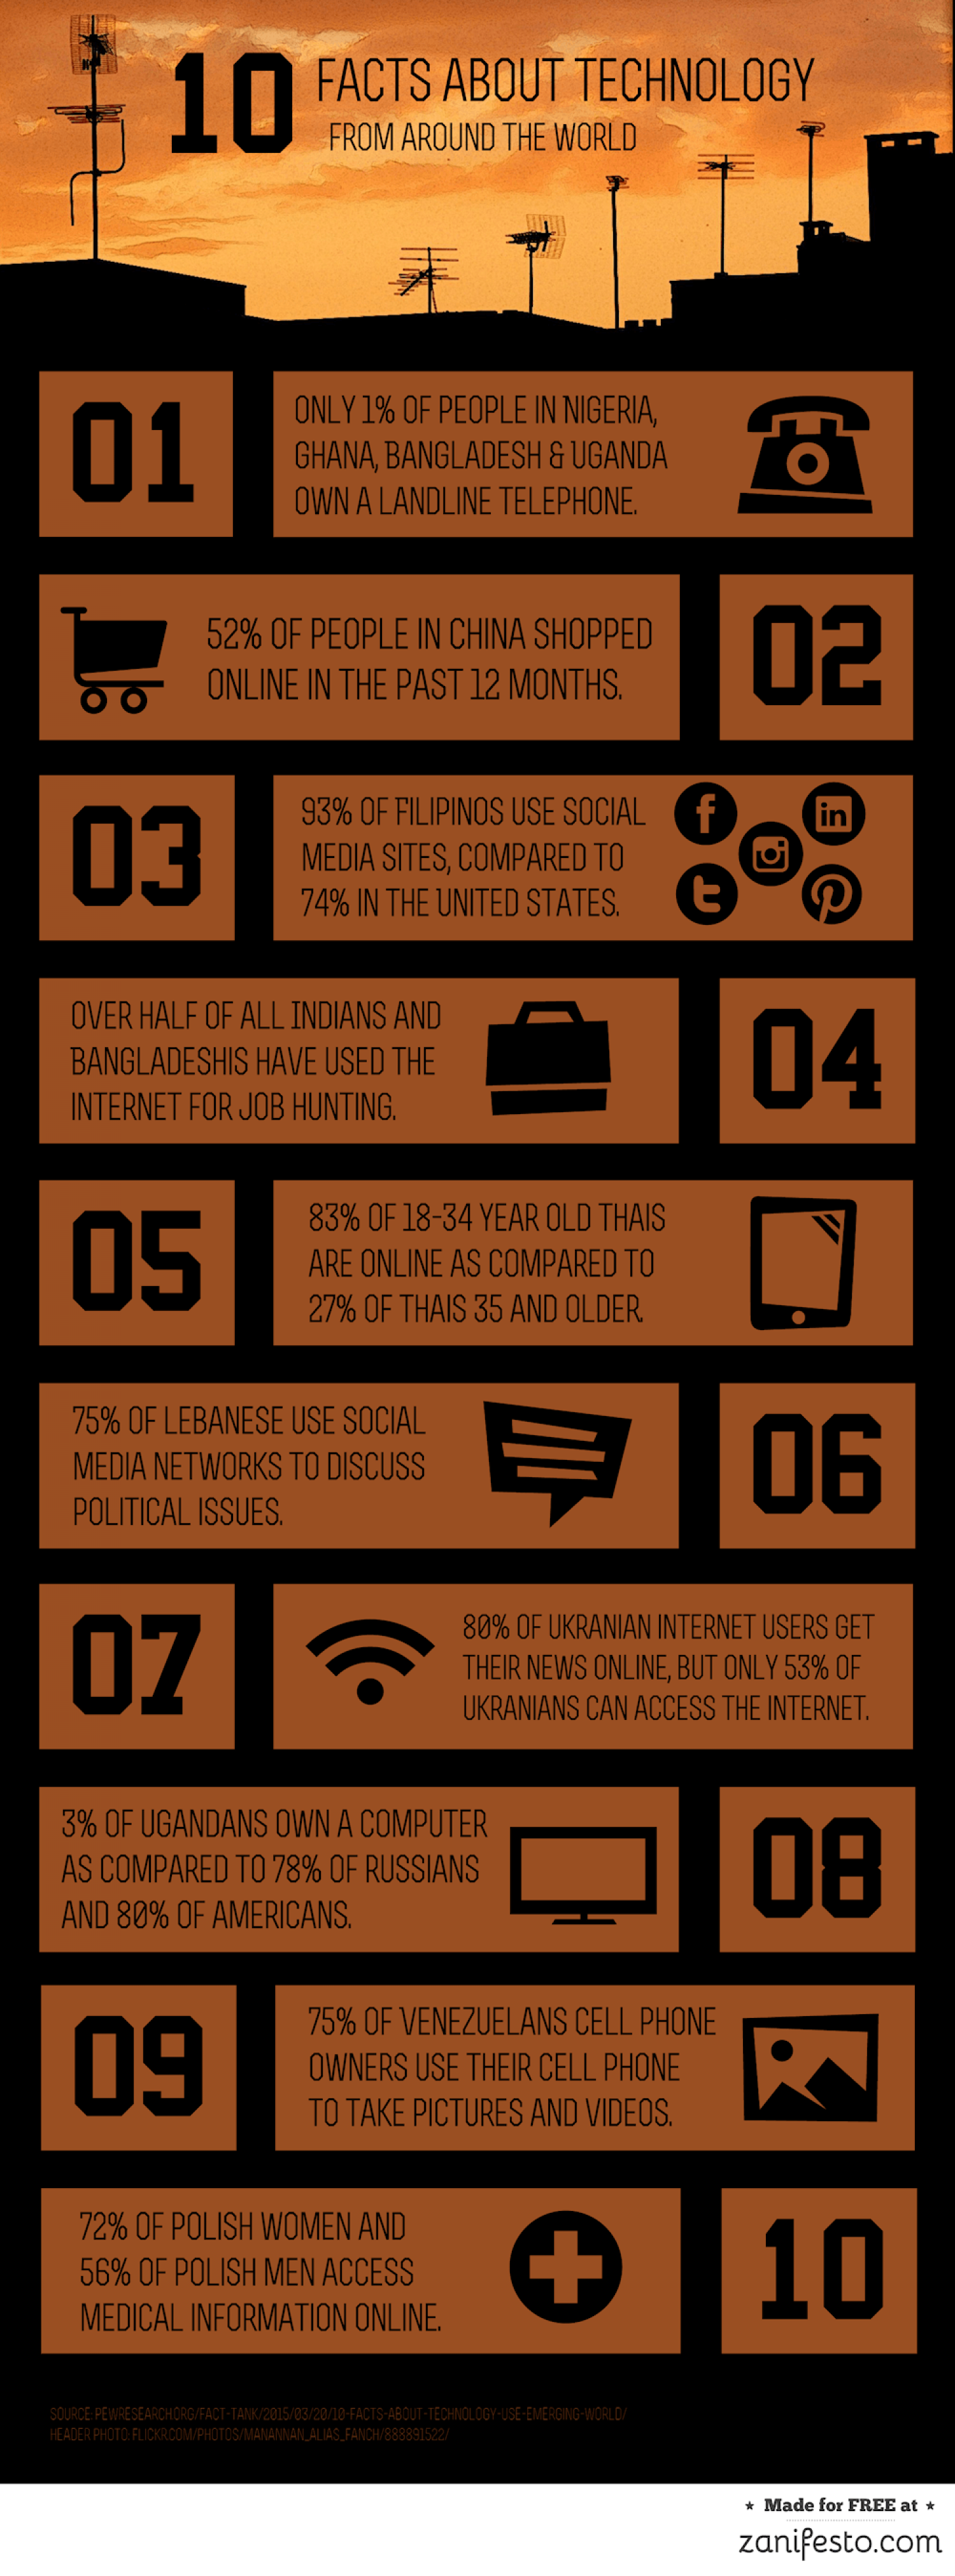 10 Facts About Technology from Around the World Infographic